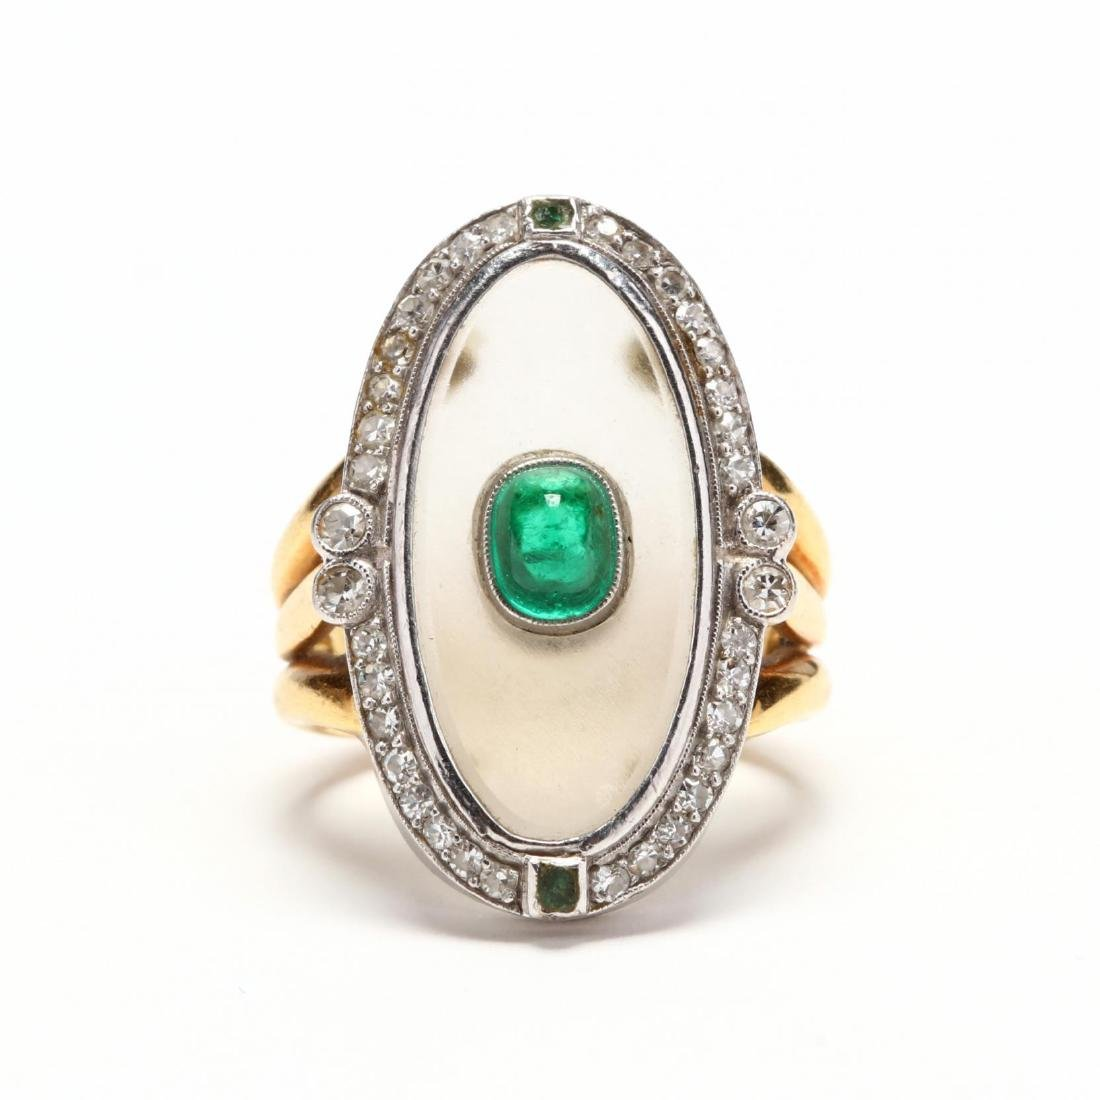 Two Color 18KT Gold, Rock Crystal, Emerald, and Diamond